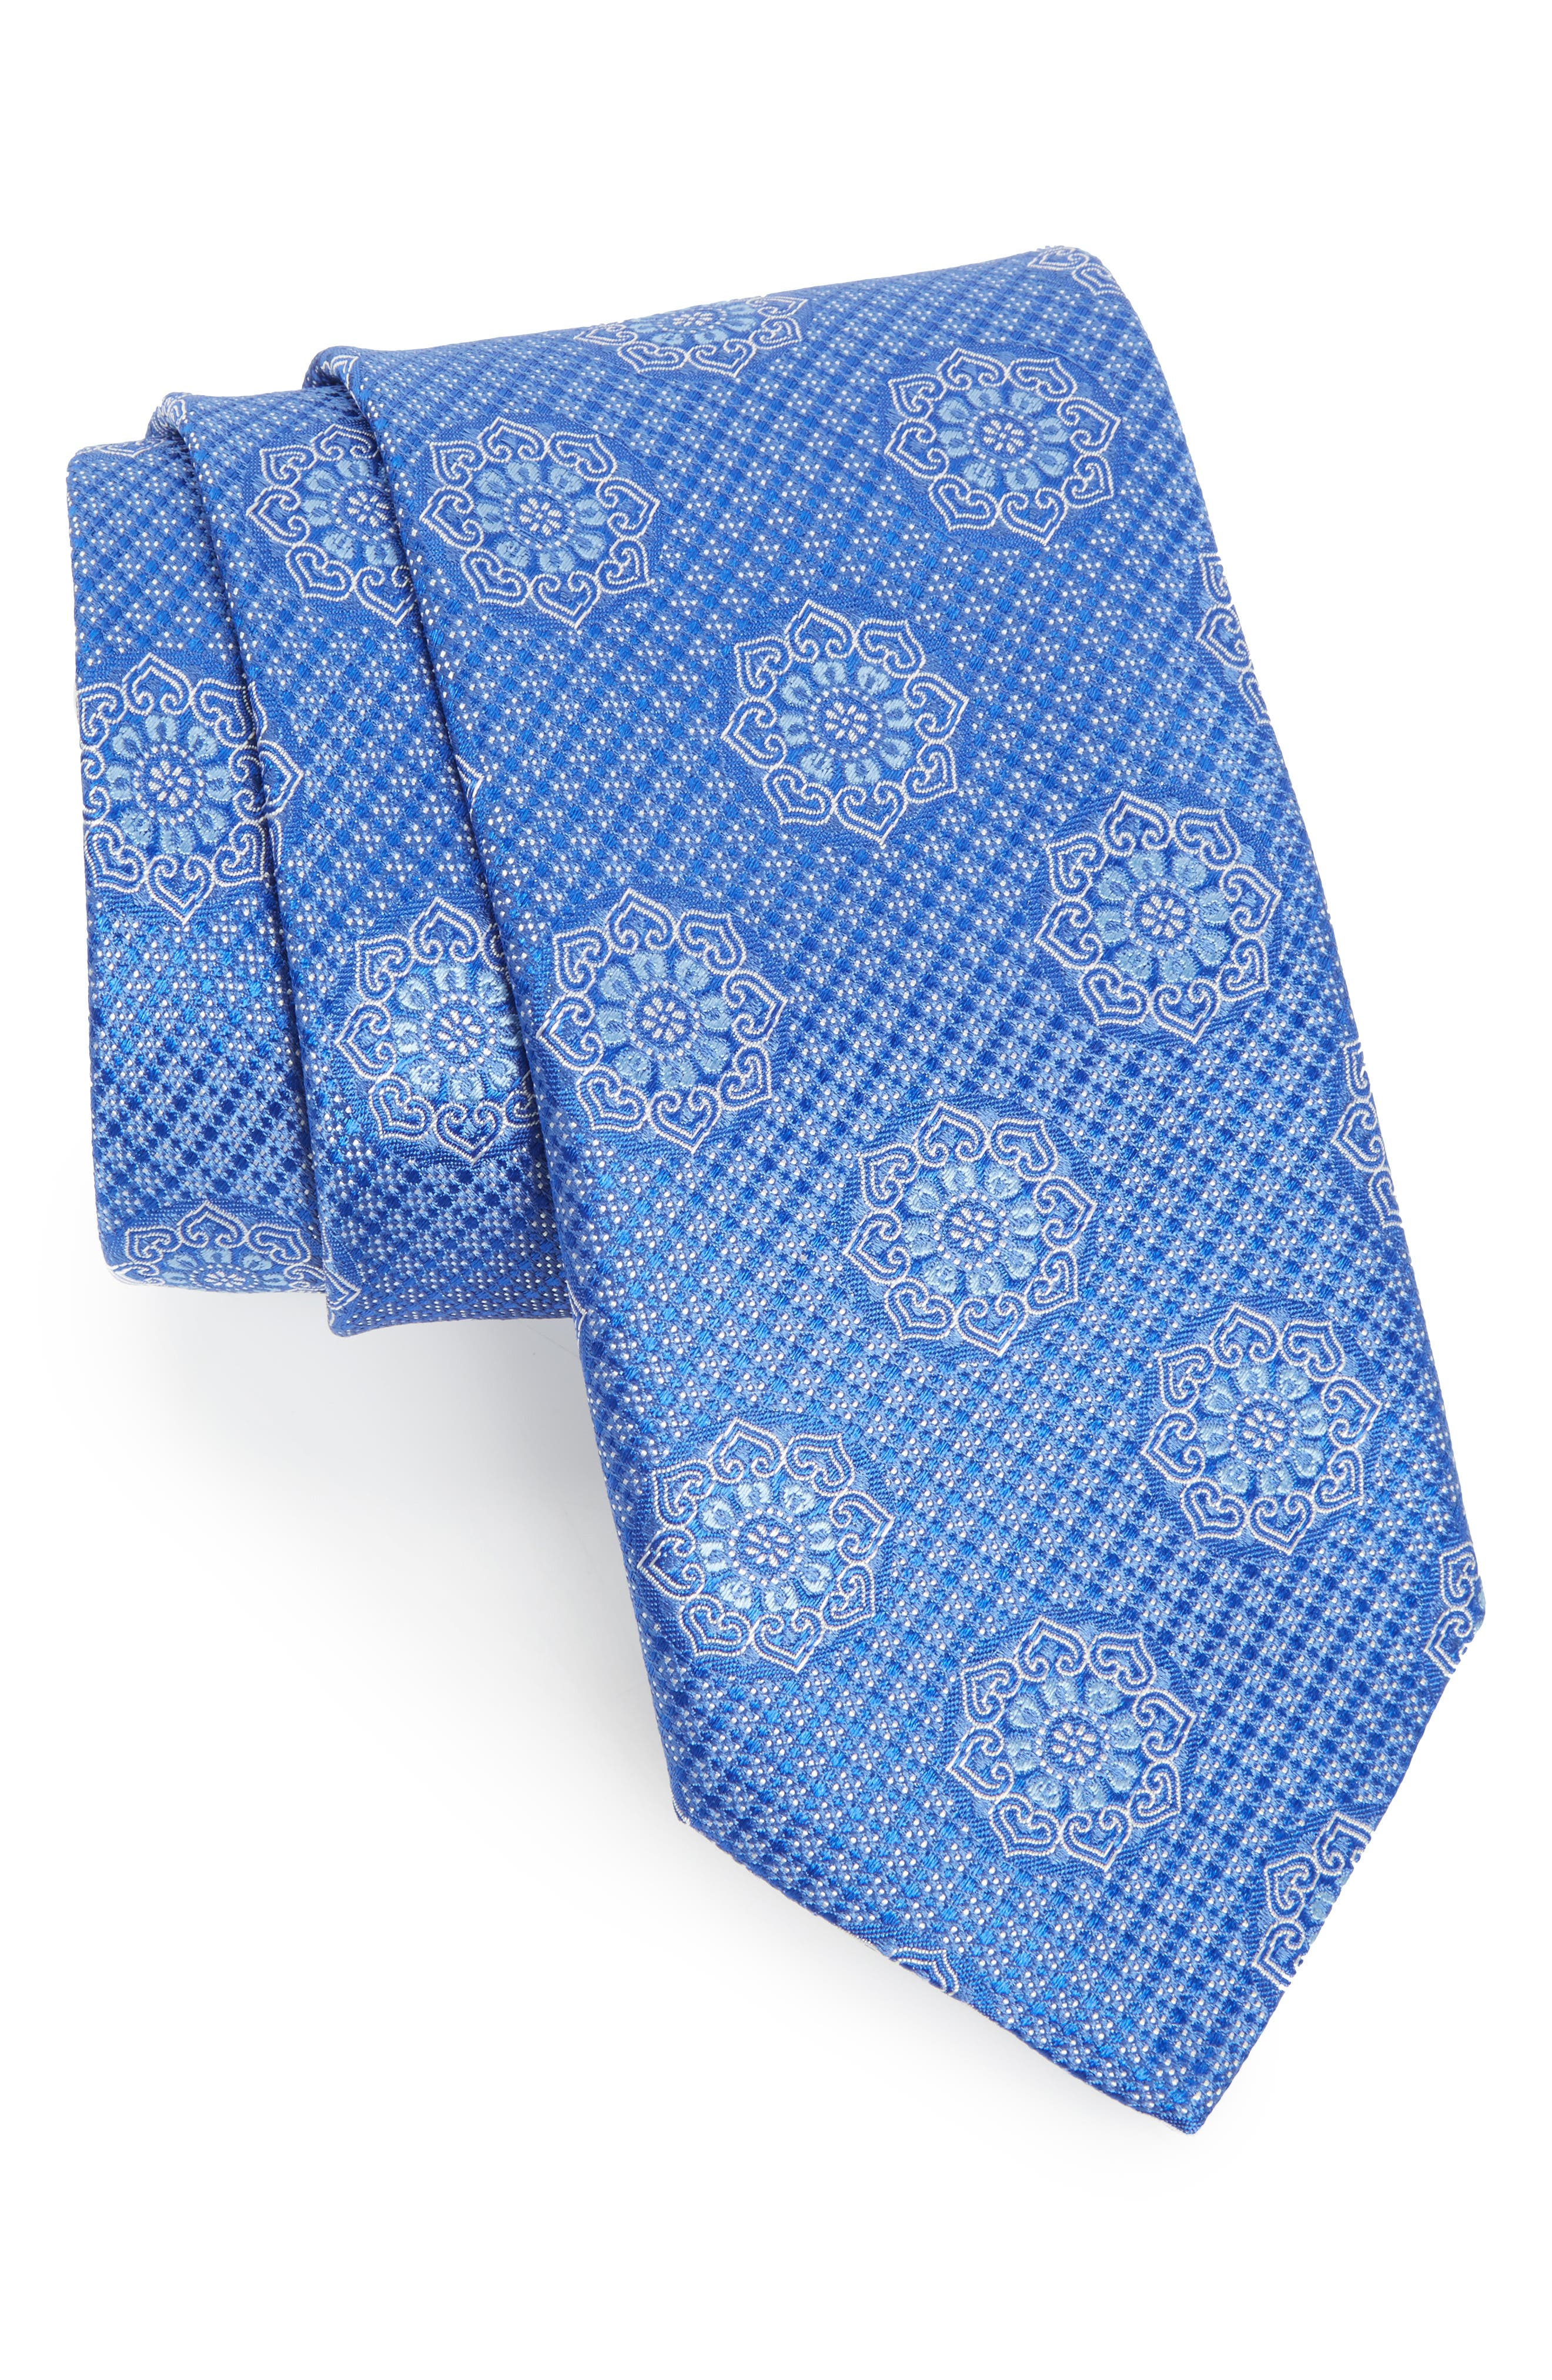 Medallion Silk Tie,                         Main,                         color, 400